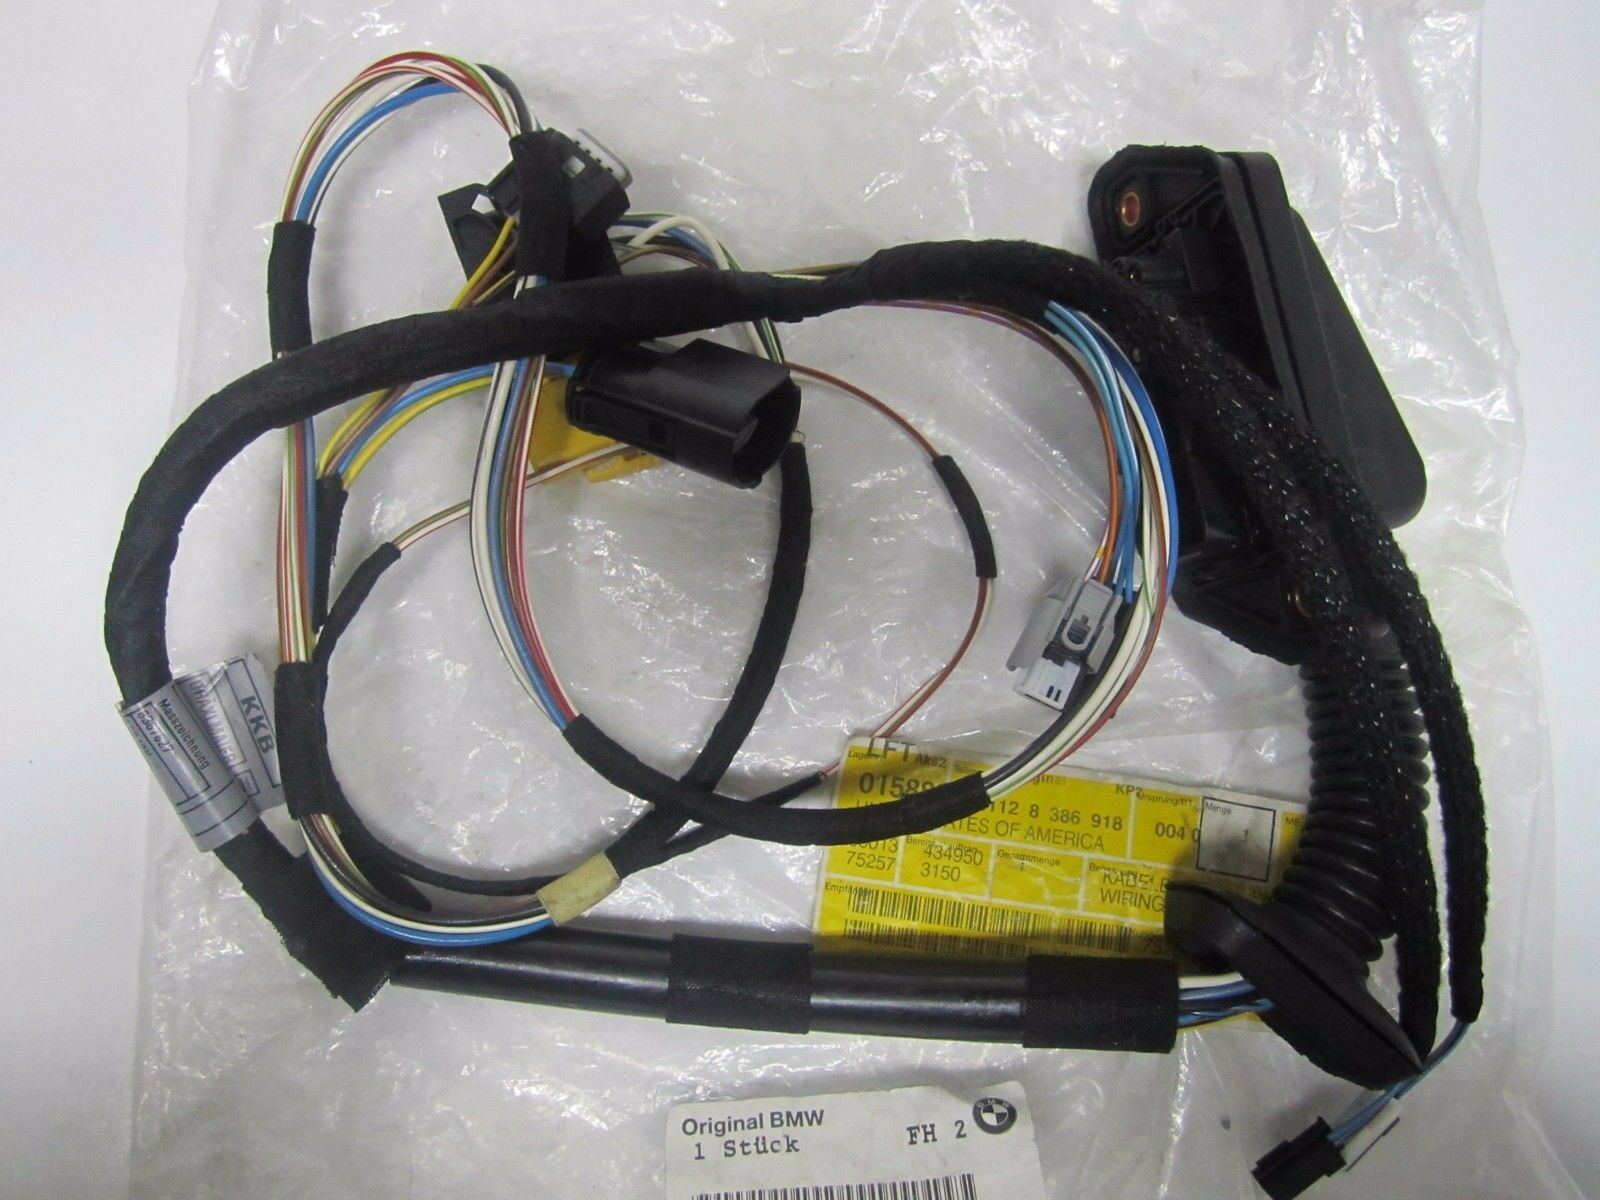 hight resolution of norton secured powered by verisign door wire harness wiring front right passenger bmw